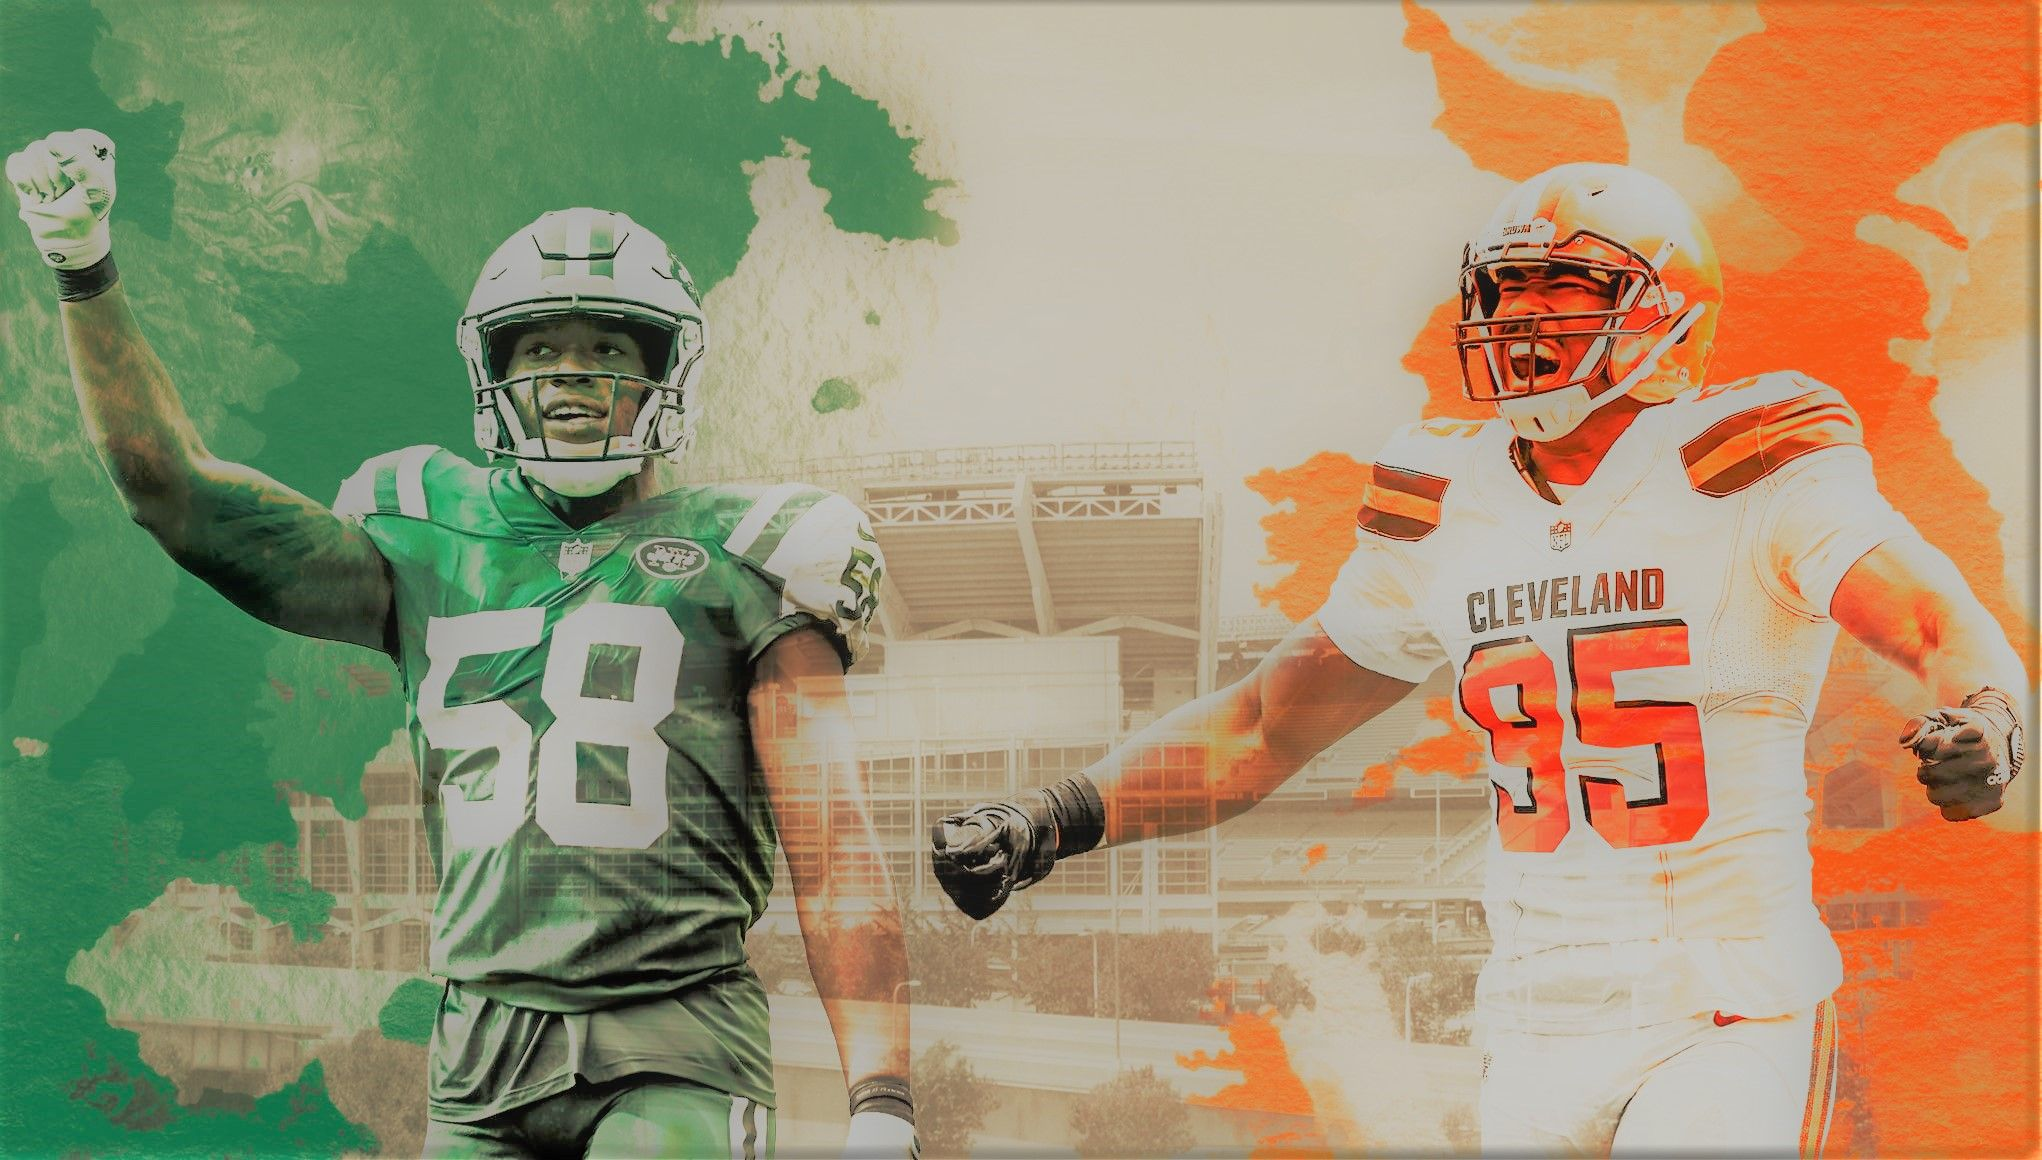 New York Jets vs. Cleveland Browns Live Streaming Watch